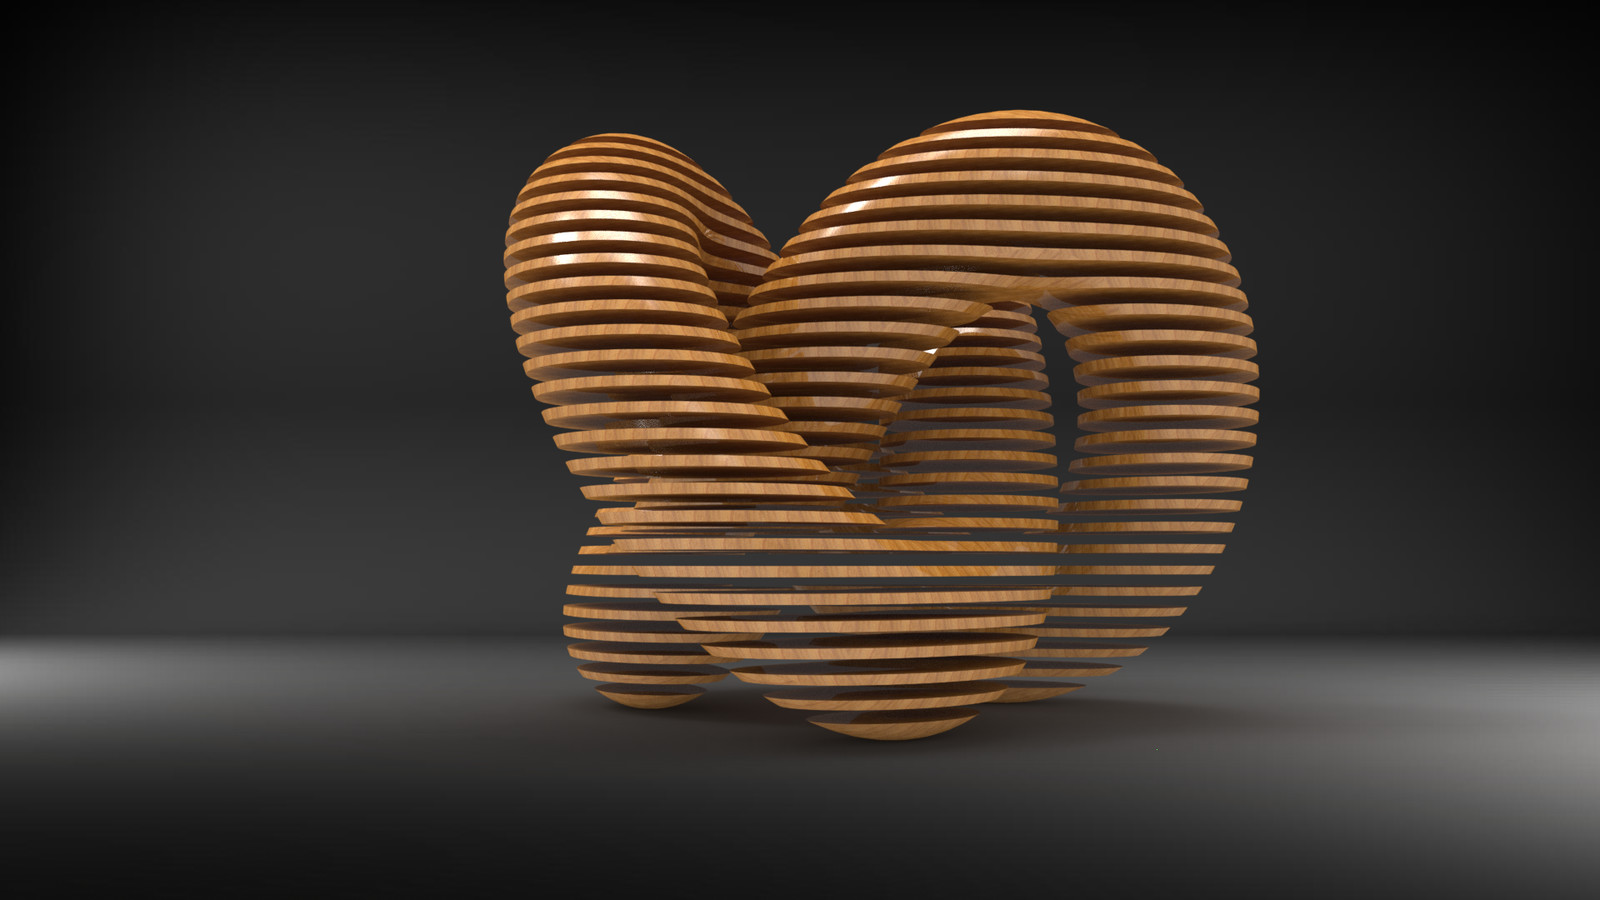 torus slice by hugo matilde